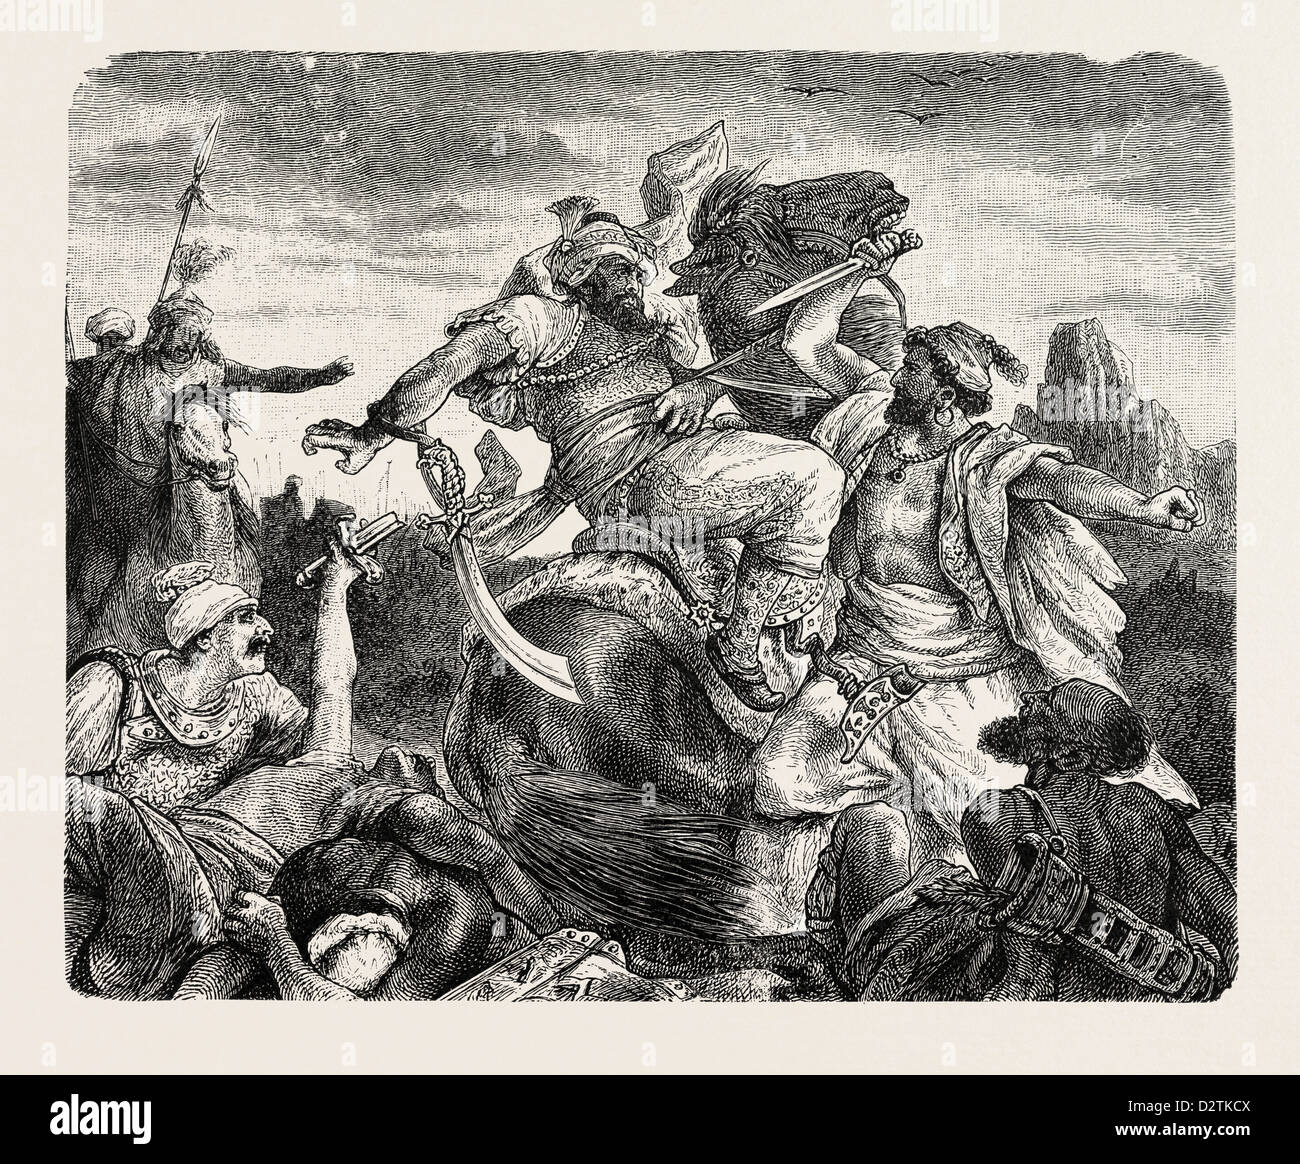 BATTLE OF THE CALIPH OMAR AGAINST THE SASSANIDES - Stock Image